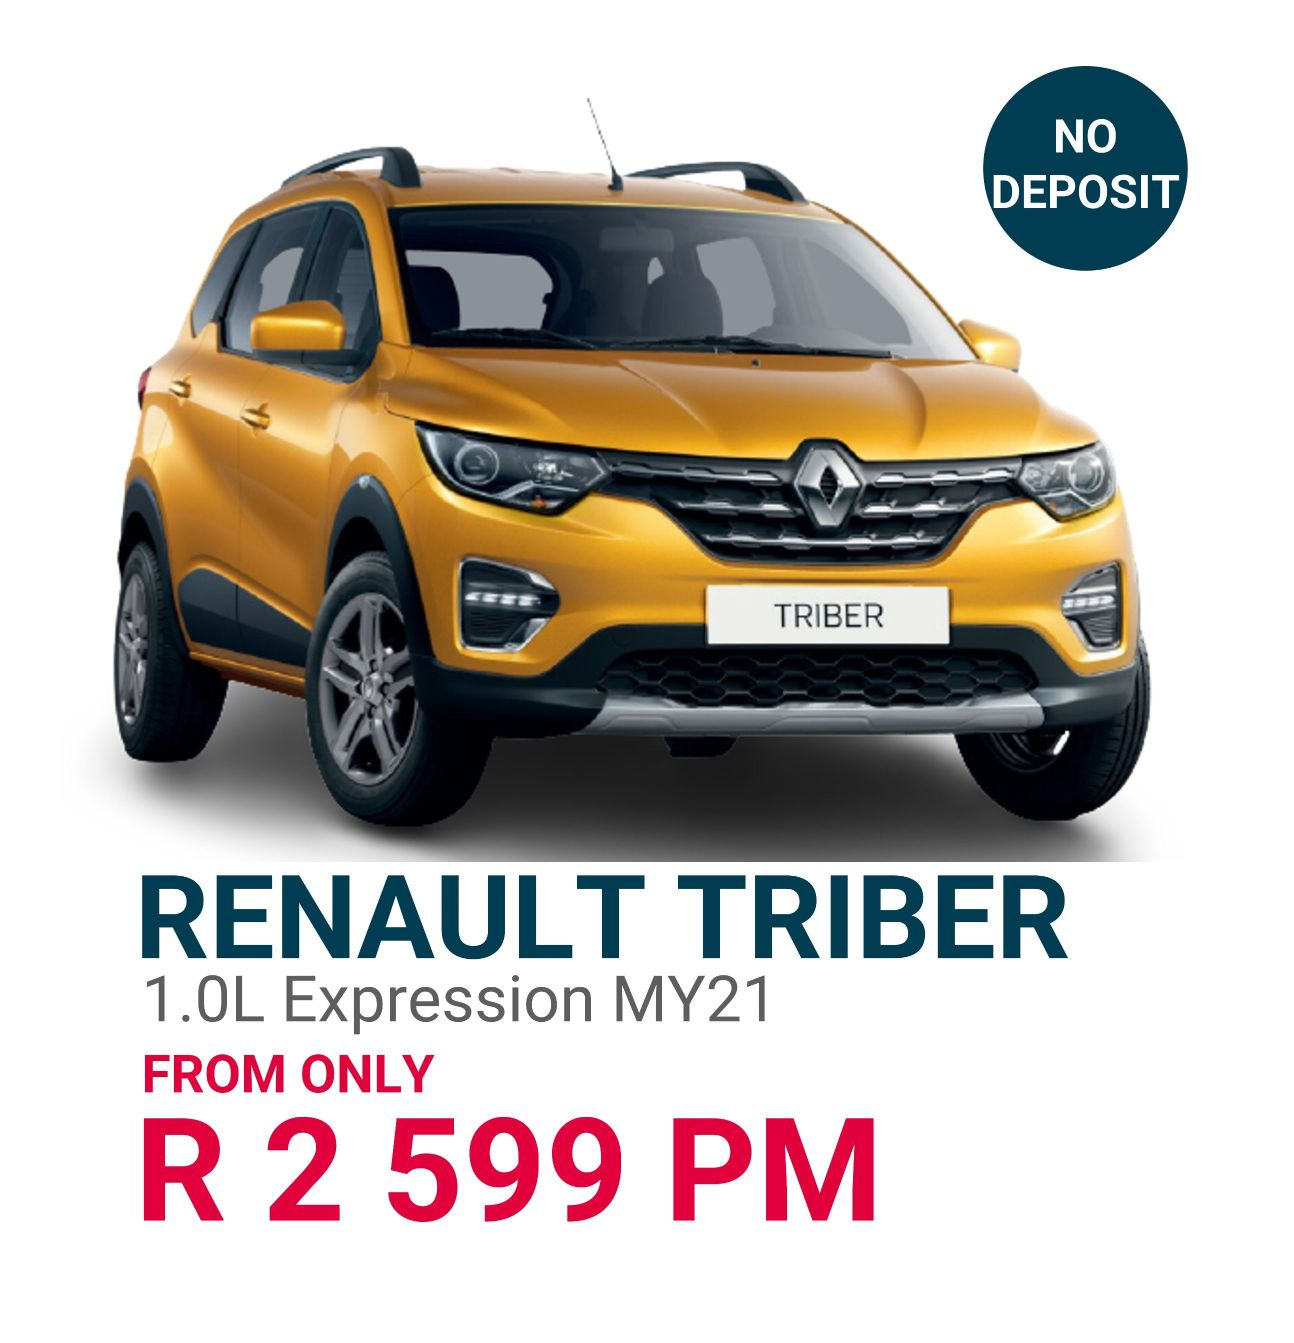 renault-triber-expression-from-only-r2-599pm